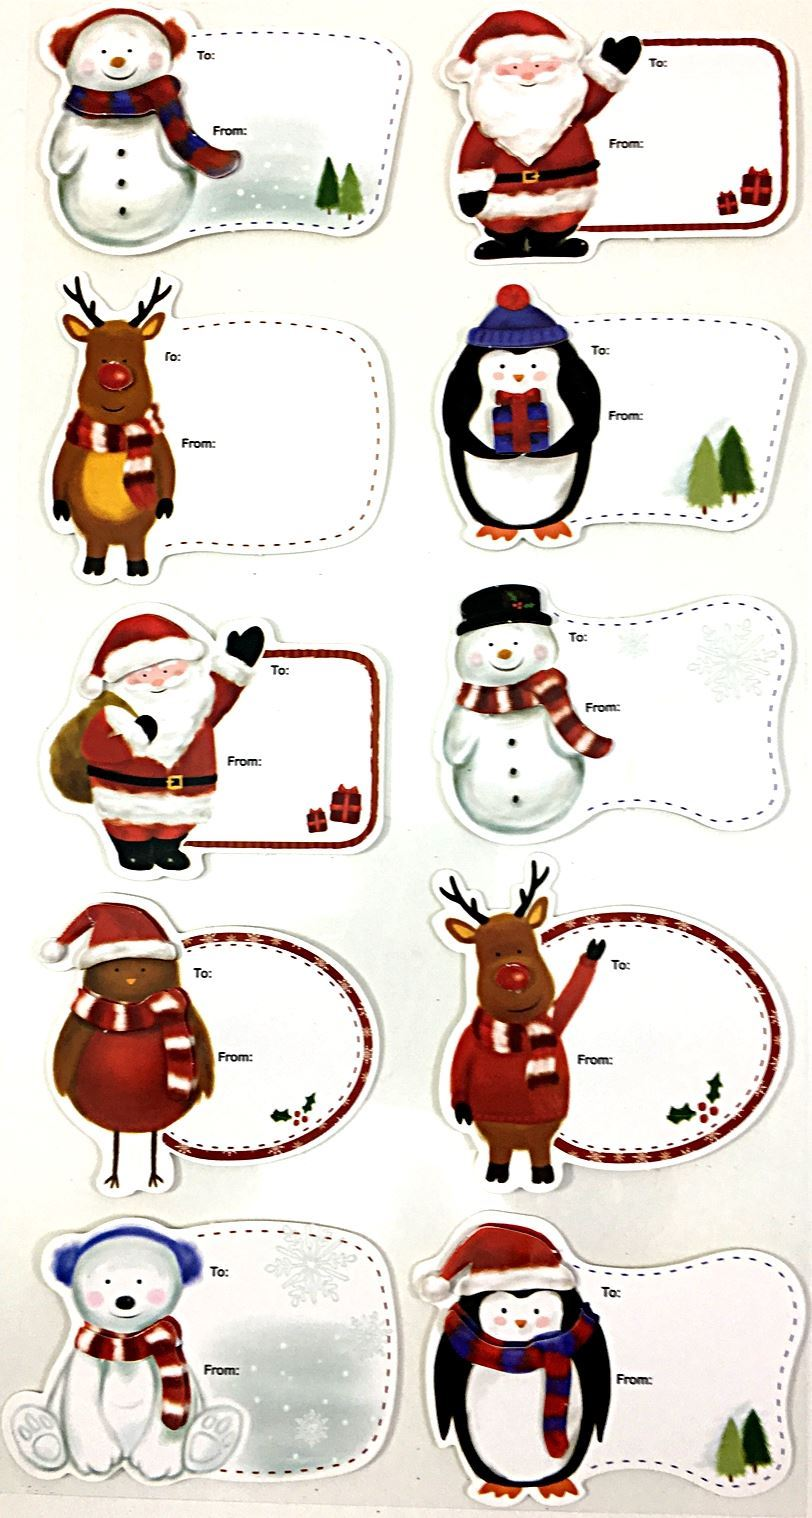 Christmas Gift Tags For Kids.Details About 10 Christmas Gift Tags 3d Present Festive Xmas Kids Self Adhesive Decor Cute Fun